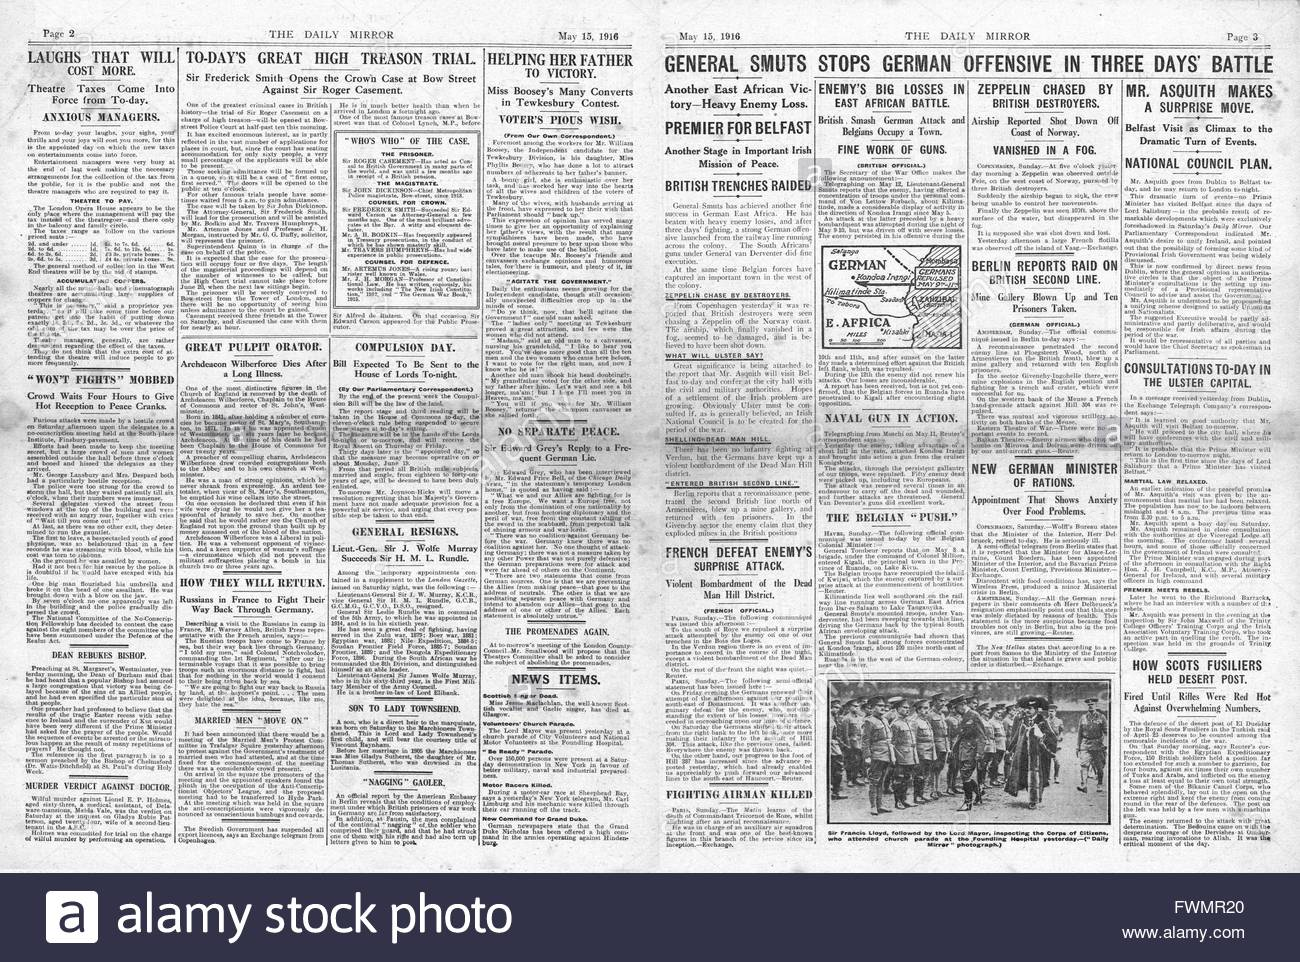 1916 Daily Mirror pages 2 & 3 General Smuts stops German offensive in East Africa and trial of Roger Casement opens Stock Photo